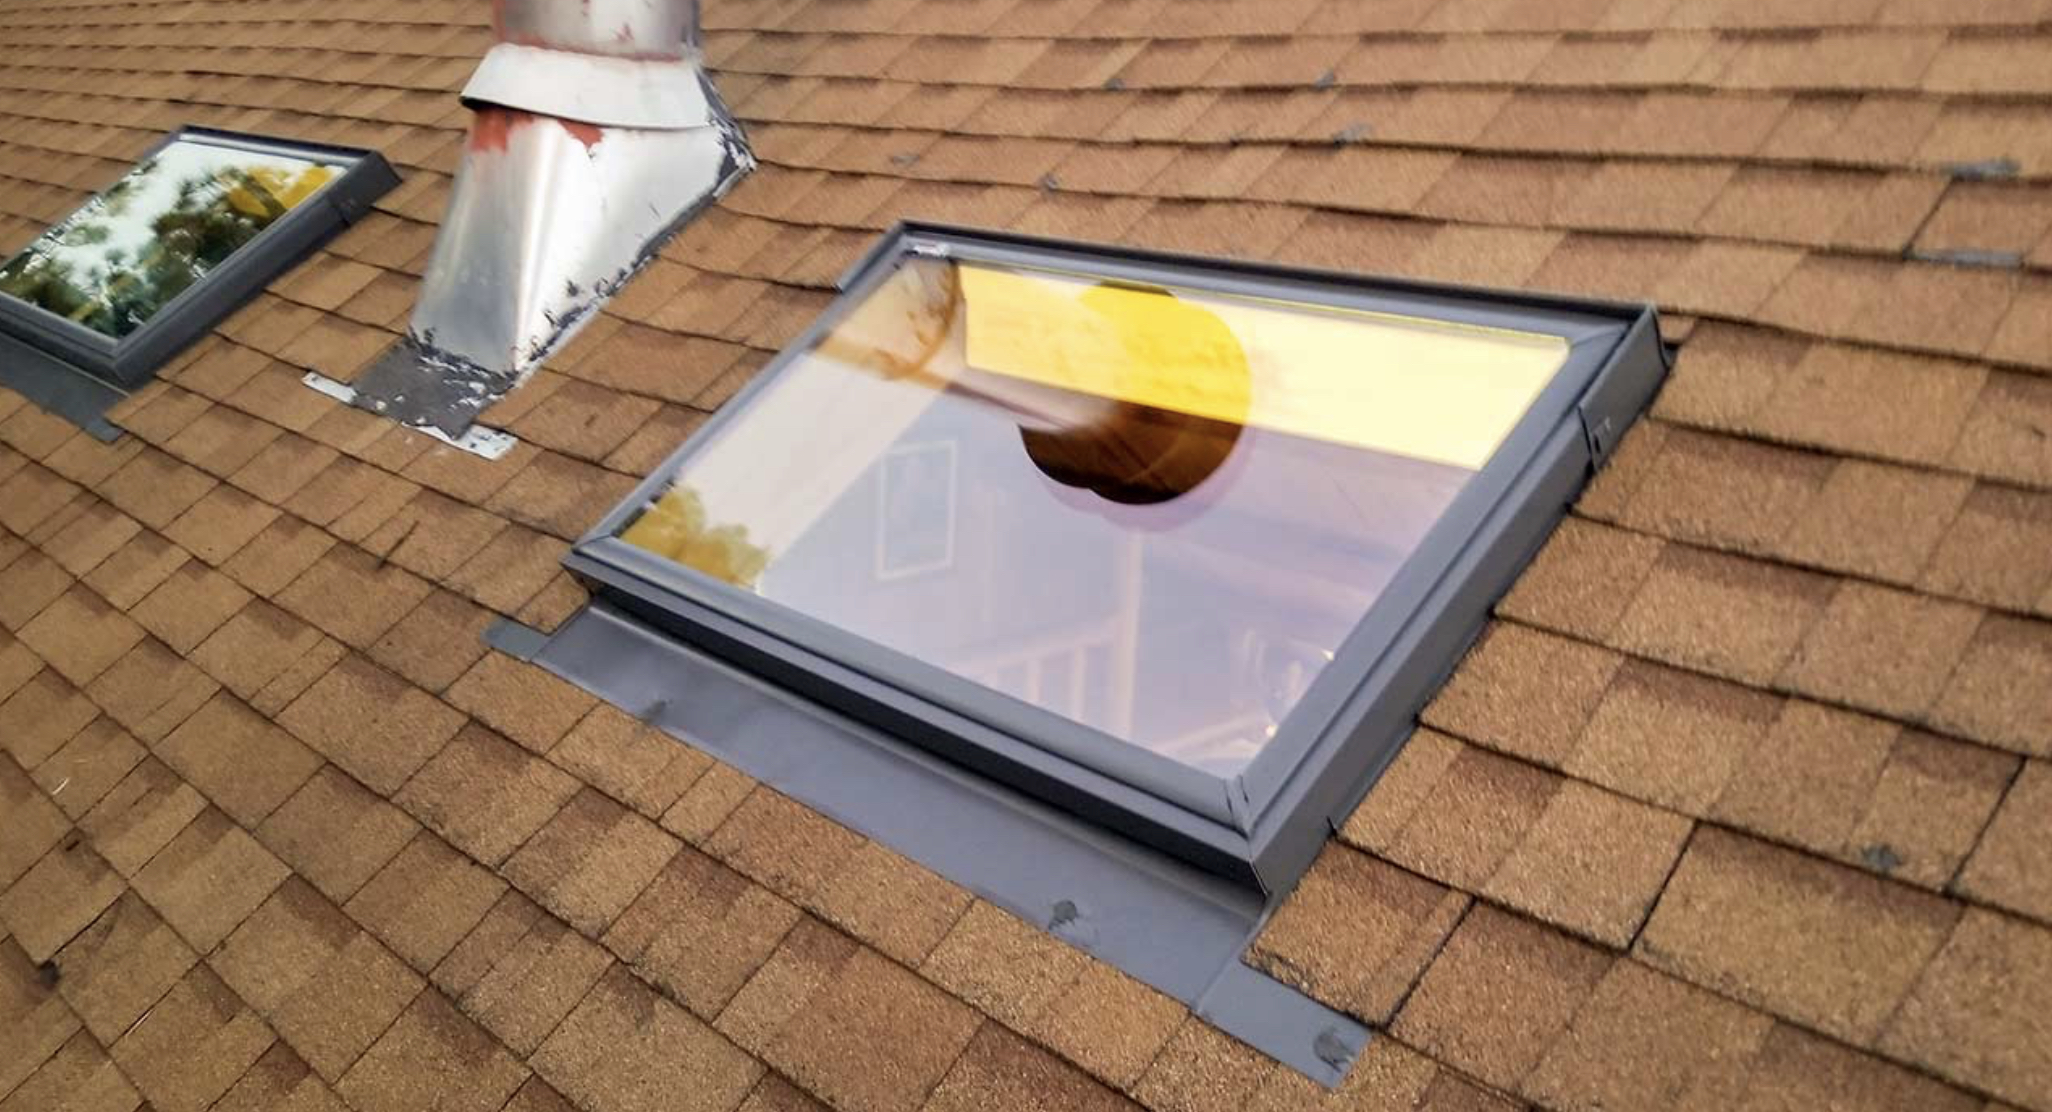 Deck mount skylight installed on an existing shingle roof. This particular example is a horizontal installation. This can be a little more expensive due to added framing